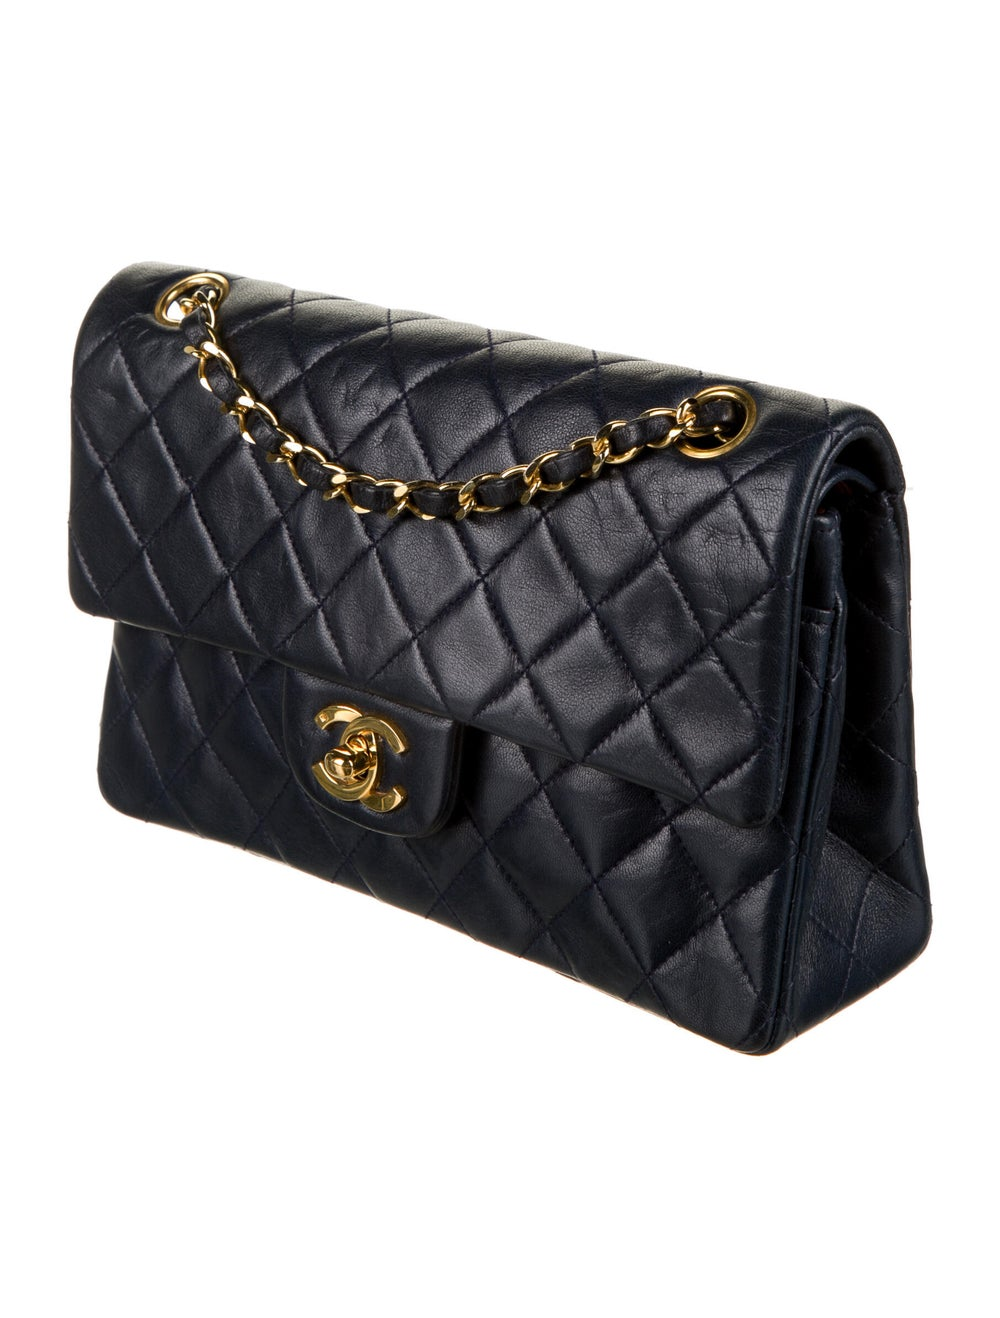 Chanel Vintage Classic Small Double Flap Bag Blue - image 3